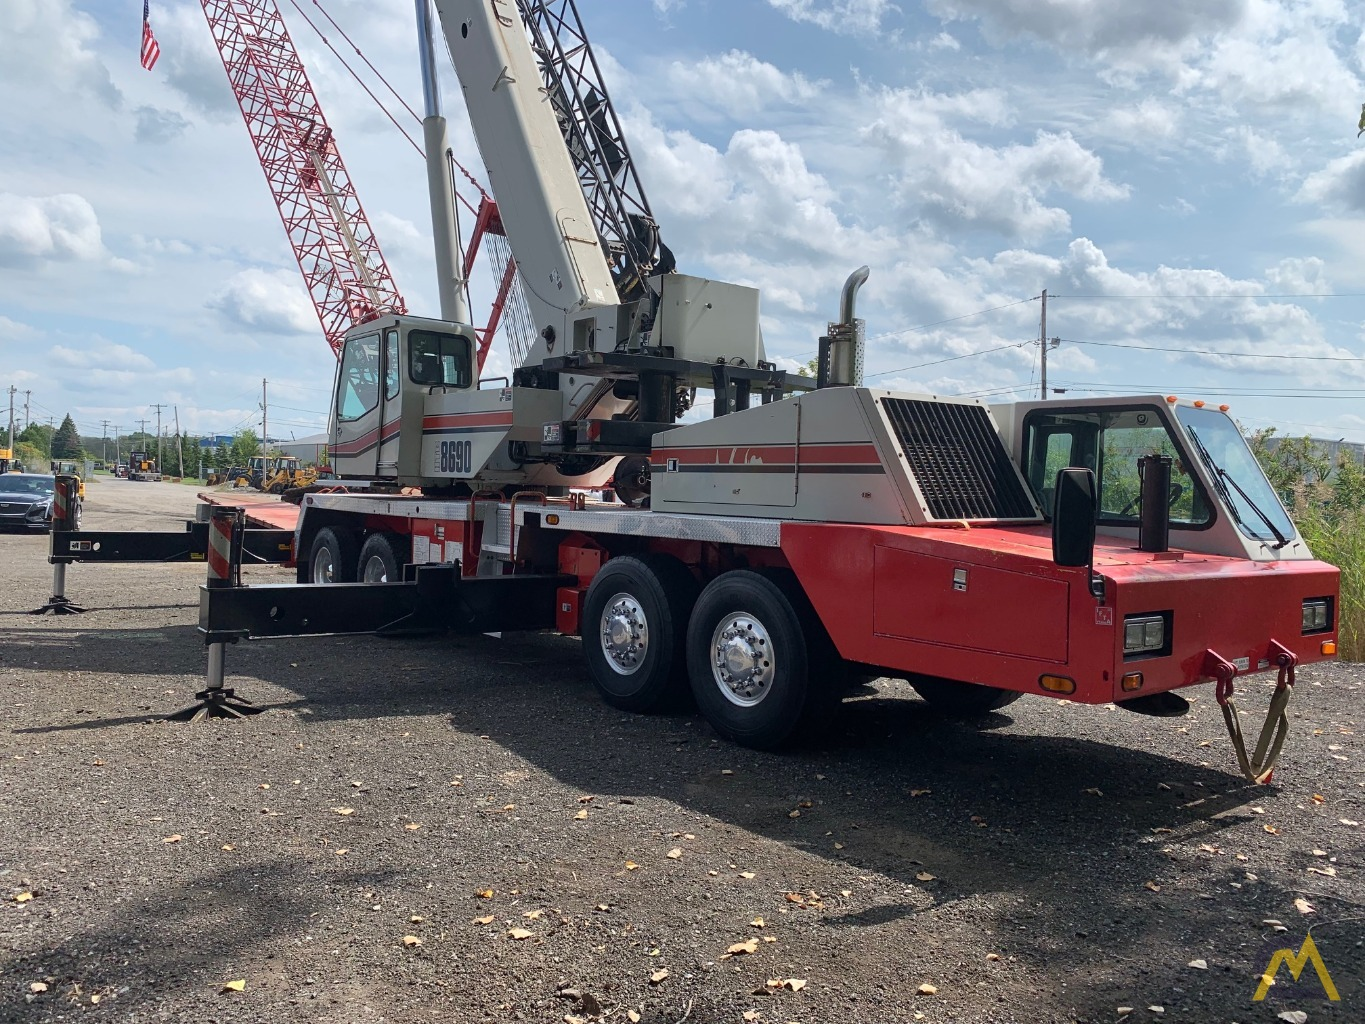 2007 Link-Belt HTC-8690 90-Ton Telescopic Truck Crane w/ Detroit Engine 4